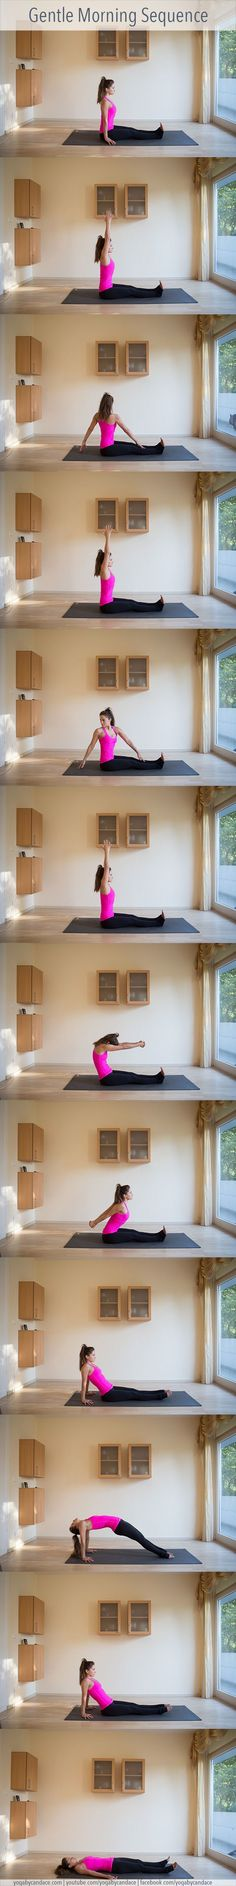 A gentle morning yoga sequence you can do from home.